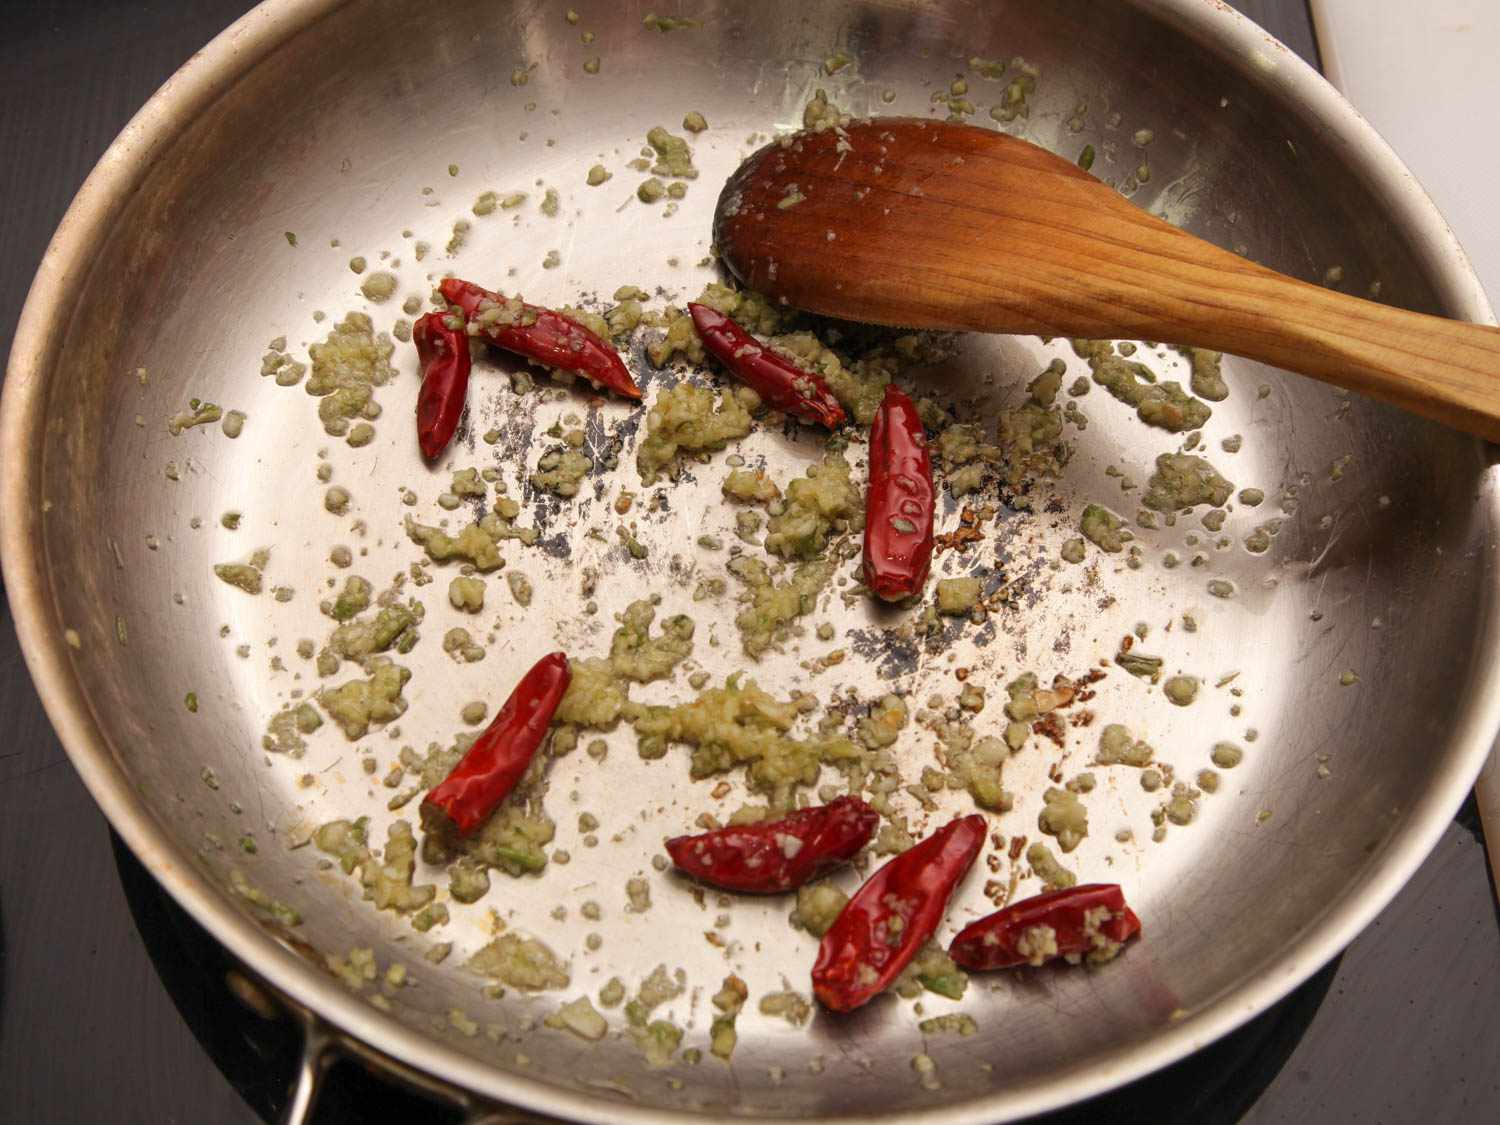 Sauteing garlic and chiles in a stainless steel skillet for General Tso's chicken.